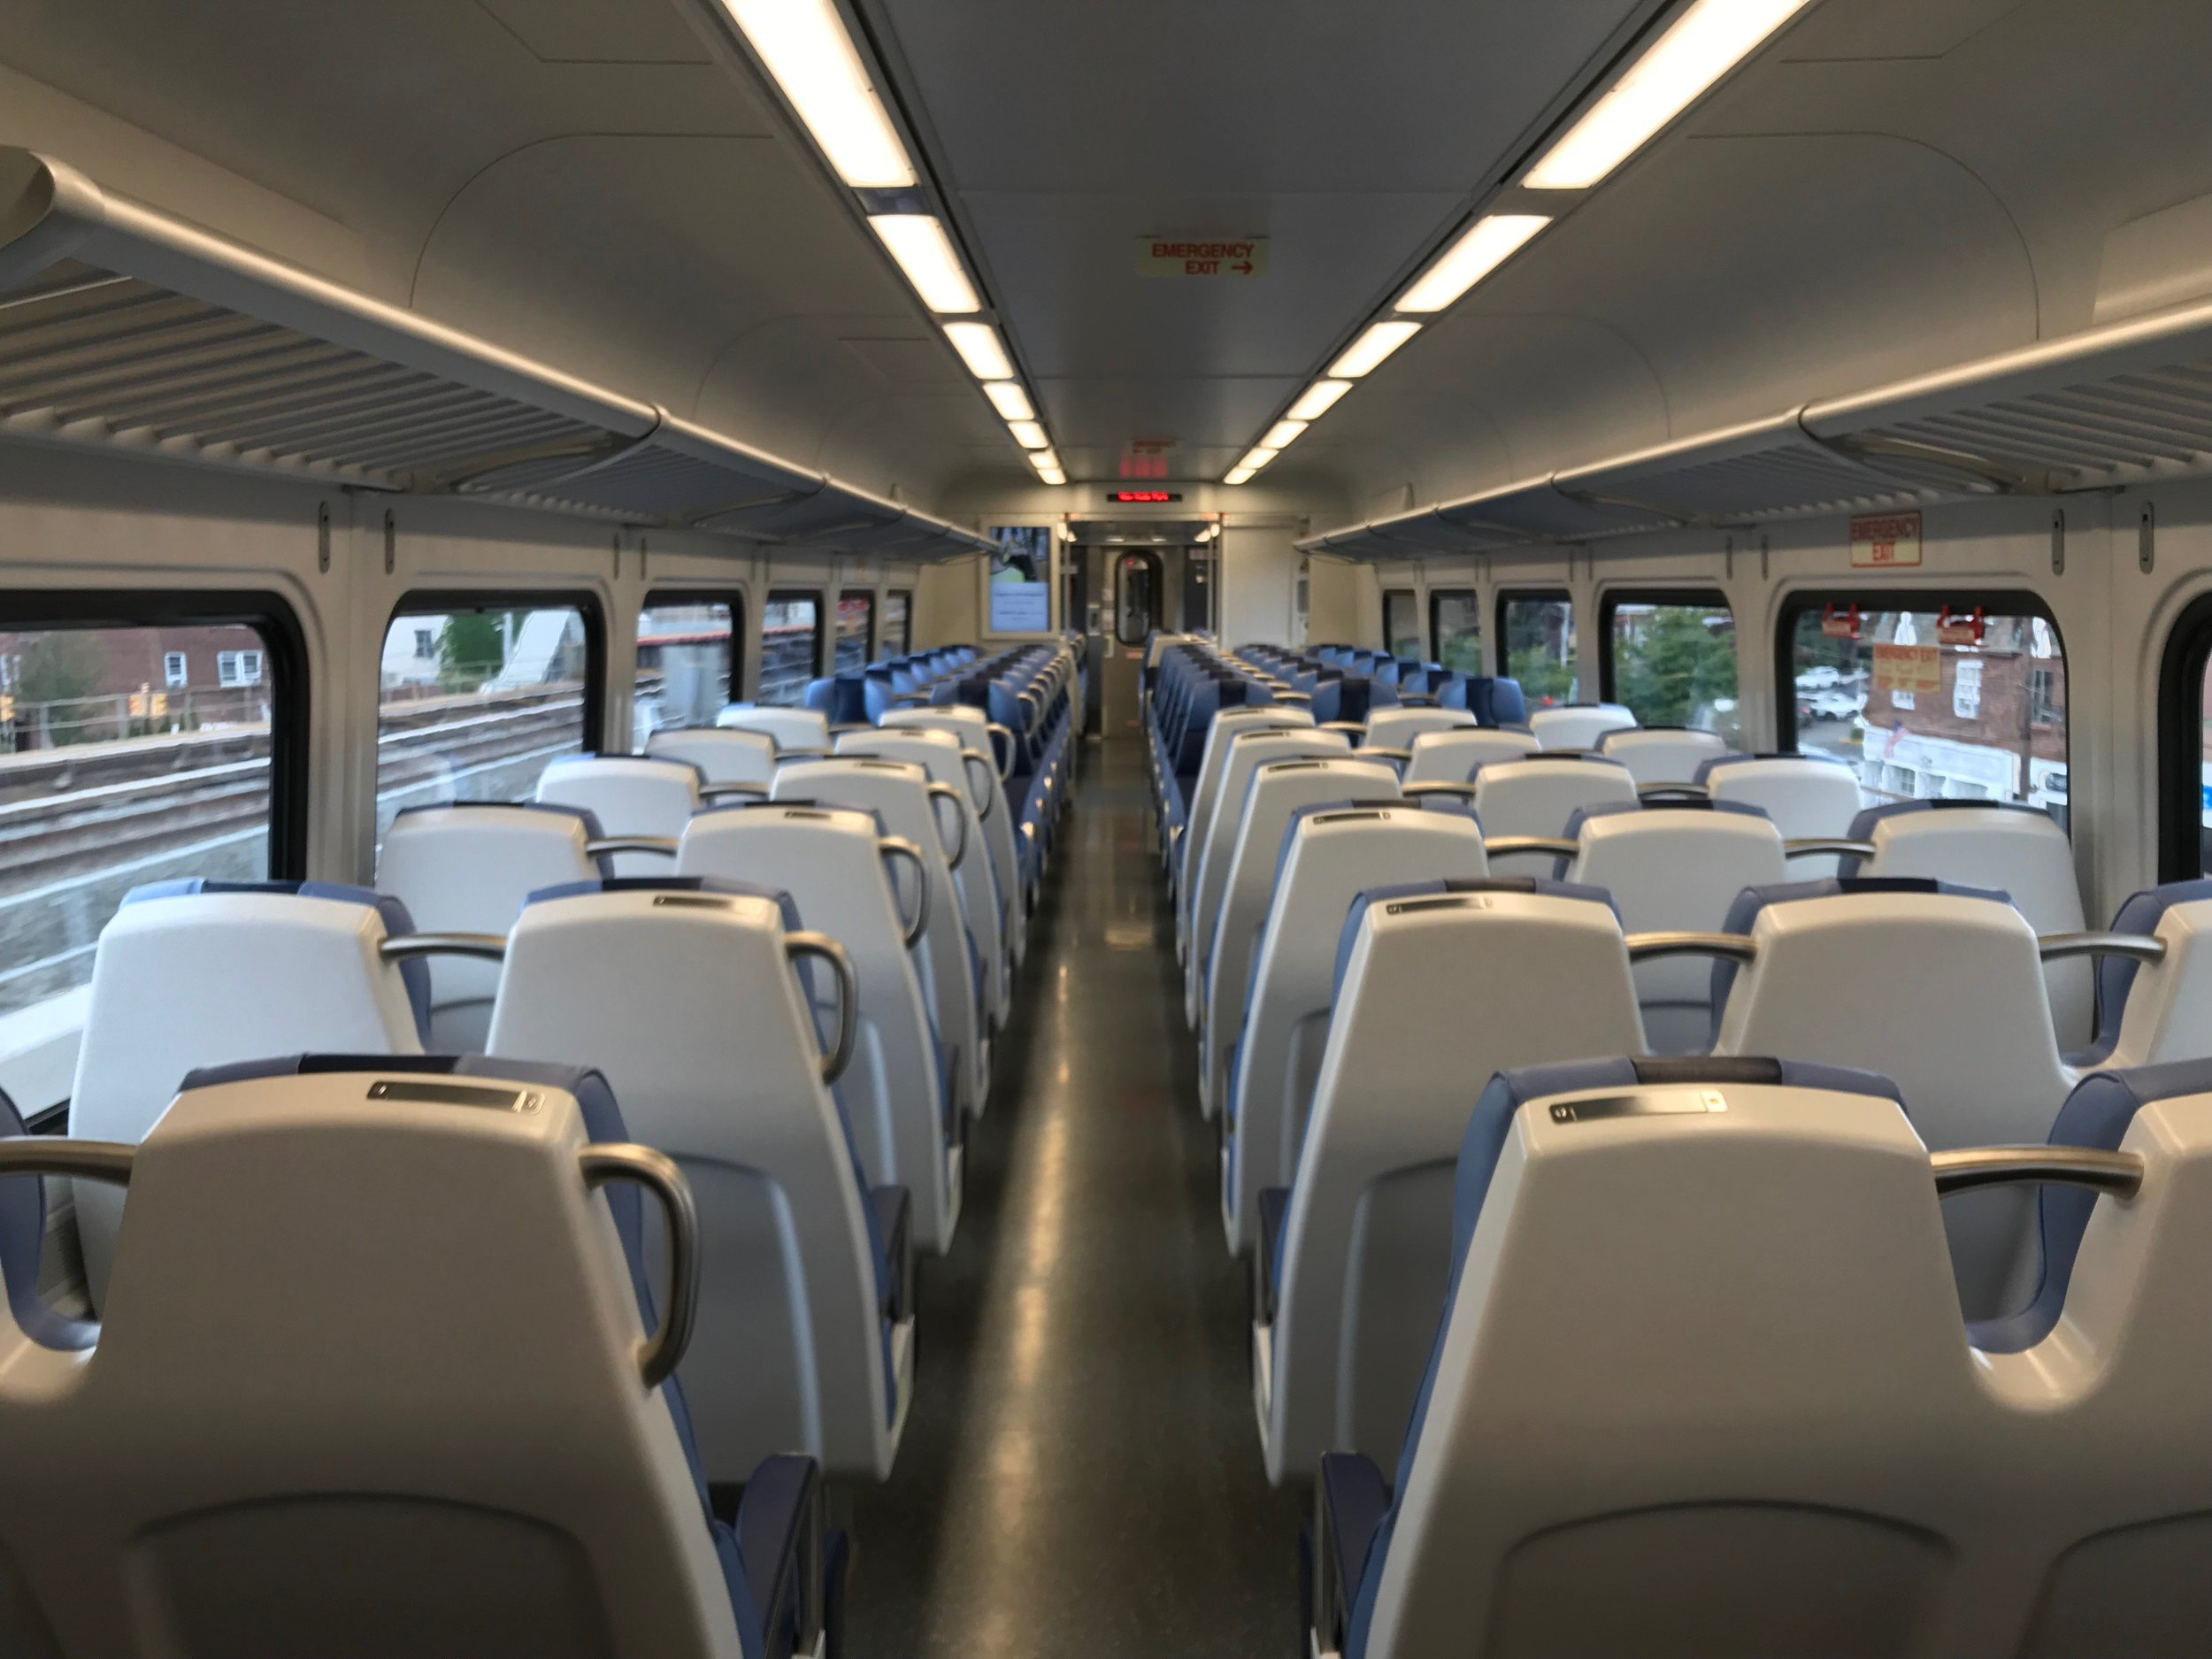 The new M9 cars feature wider seats, additional seating and electrical outlets on both sides of the car in every seat row. Photo via the LIRR.